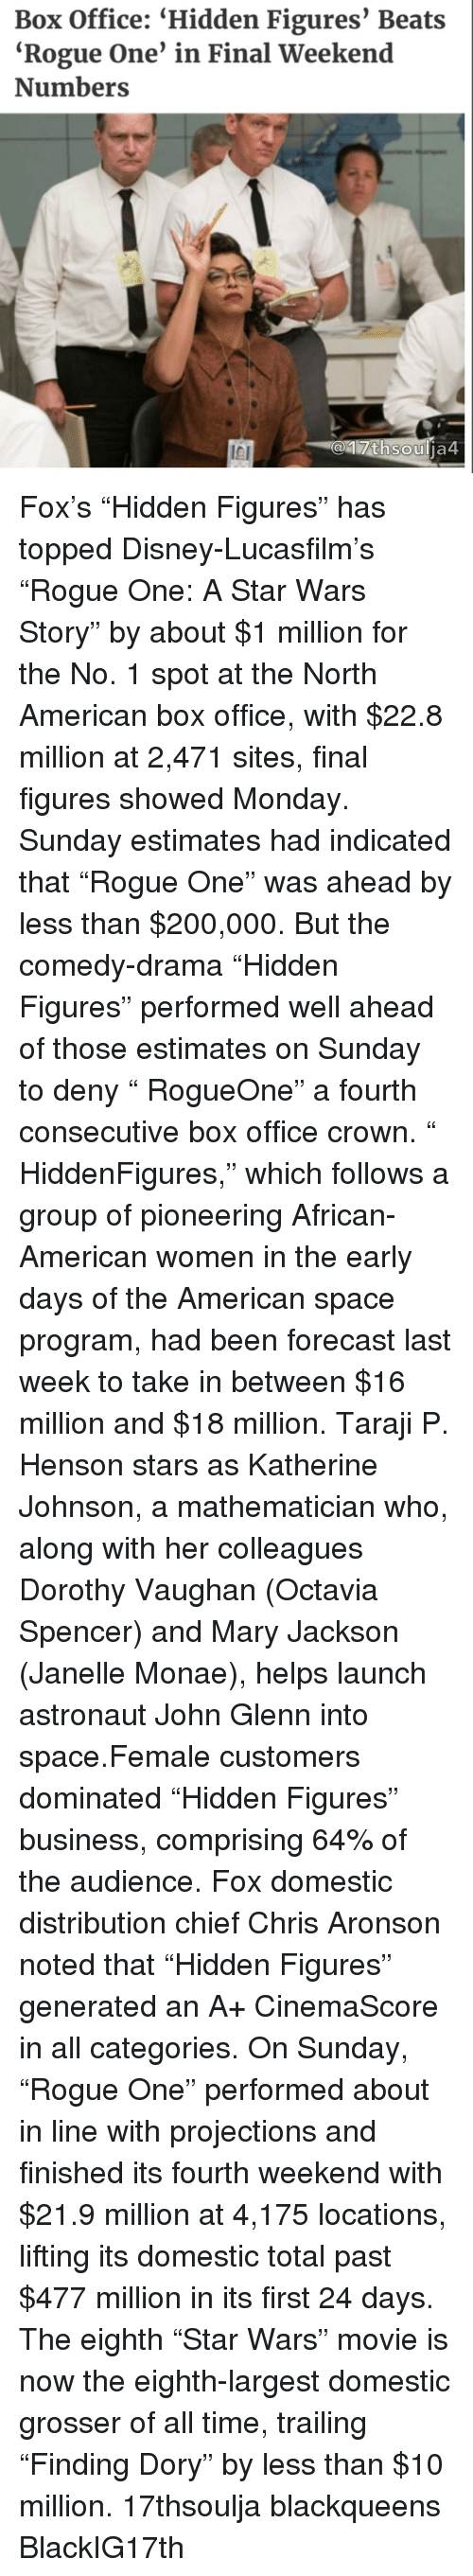 "Memes, Taraji P. Henson, and Janelle Monae: Box Office: ""Hidden Figures' Beats  ""Rogue One' in Final Weekend  Numbers  thsou  ja4 Fox's ""Hidden Figures"" has topped Disney-Lucasfilm's ""Rogue One: A Star Wars Story"" by about $1 million for the No. 1 spot at the North American box office, with $22.8 million at 2,471 sites, final figures showed Monday. Sunday estimates had indicated that ""Rogue One"" was ahead by less than $200,000. But the comedy-drama ""Hidden Figures"" performed well ahead of those estimates on Sunday to deny "" RogueOne"" a fourth consecutive box office crown. "" HiddenFigures,"" which follows a group of pioneering African-American women in the early days of the American space program, had been forecast last week to take in between $16 million and $18 million. Taraji P. Henson stars as Katherine Johnson, a mathematician who, along with her colleagues Dorothy Vaughan (Octavia Spencer) and Mary Jackson (Janelle Monae), helps launch astronaut John Glenn into space.Female customers dominated ""Hidden Figures"" business, comprising 64% of the audience. Fox domestic distribution chief Chris Aronson noted that ""Hidden Figures"" generated an A+ CinemaScore in all categories. On Sunday, ""Rogue One"" performed about in line with projections and finished its fourth weekend with $21.9 million at 4,175 locations, lifting its domestic total past $477 million in its first 24 days. The eighth ""Star Wars"" movie is now the eighth-largest domestic grosser of all time, trailing ""Finding Dory"" by less than $10 million. 17thsoulja blackqueens BlackIG17th"